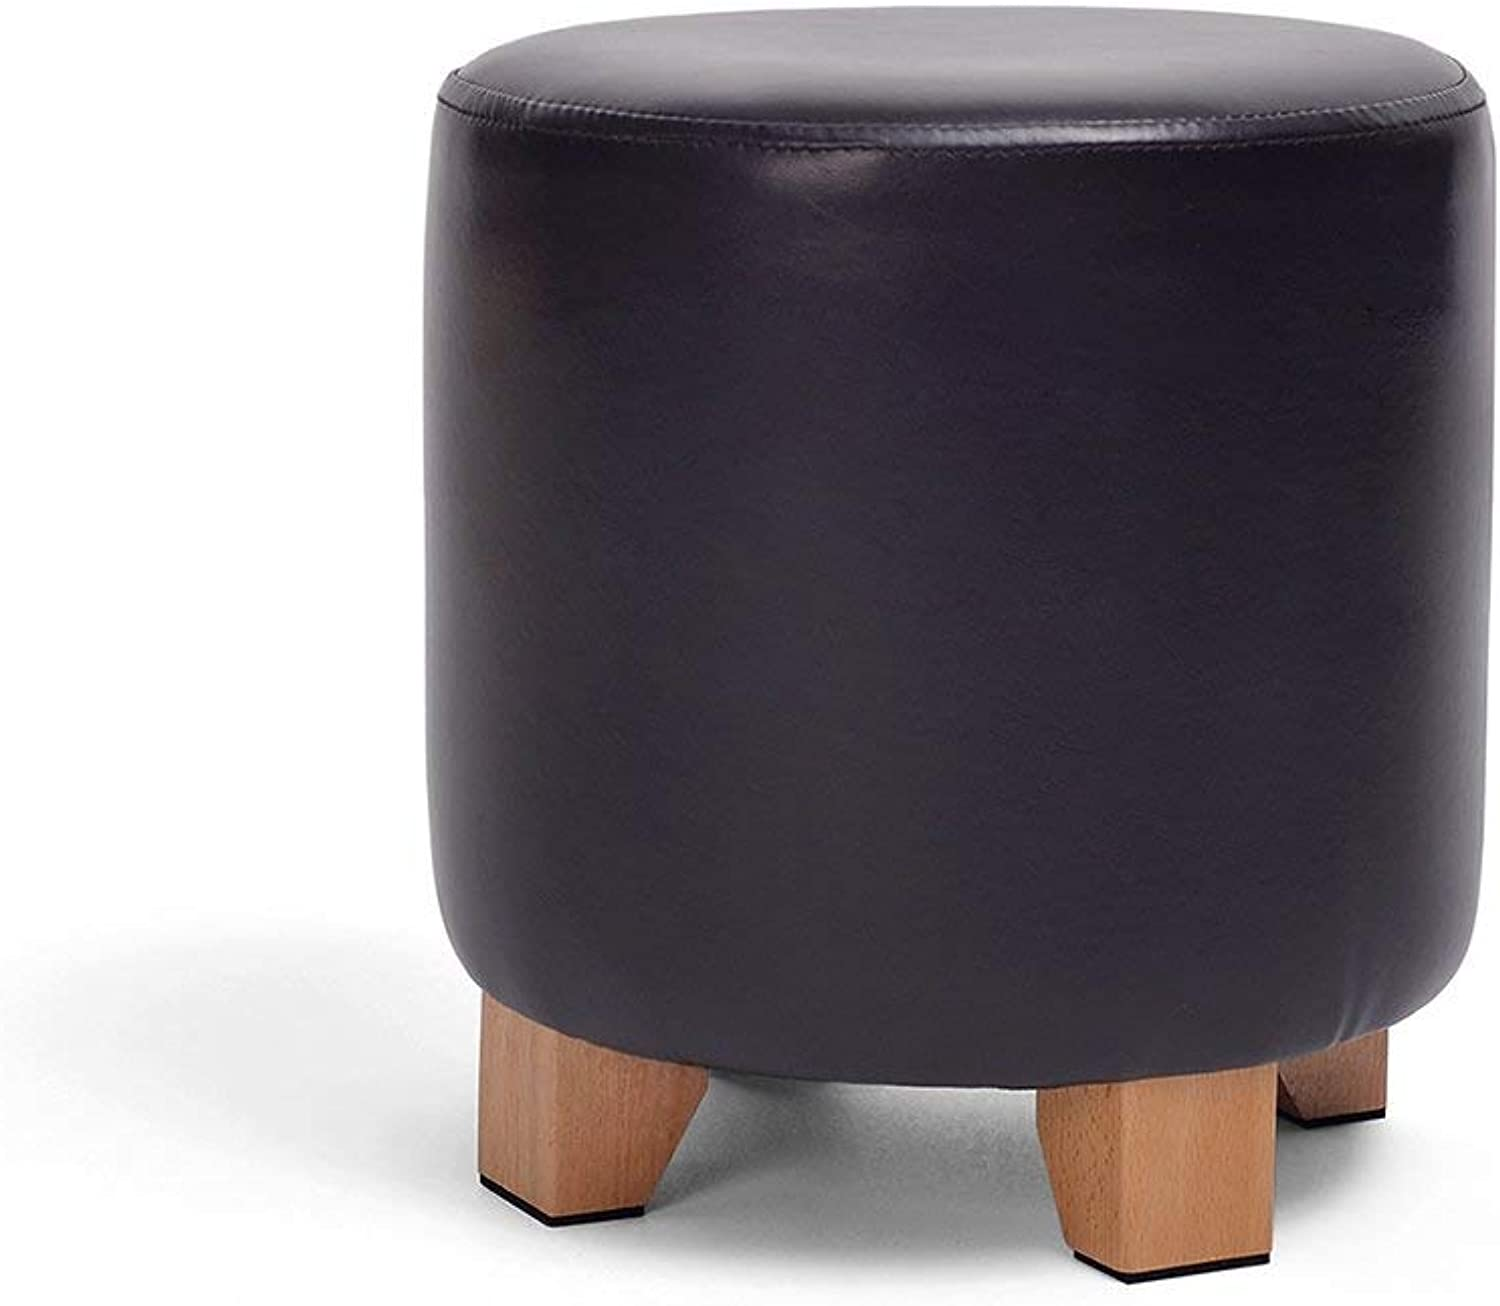 Ronggoutrade Leather Stool shoes Bench Round Pier Stool Sofa Stool Dressing Stool (color   SMA - Black)